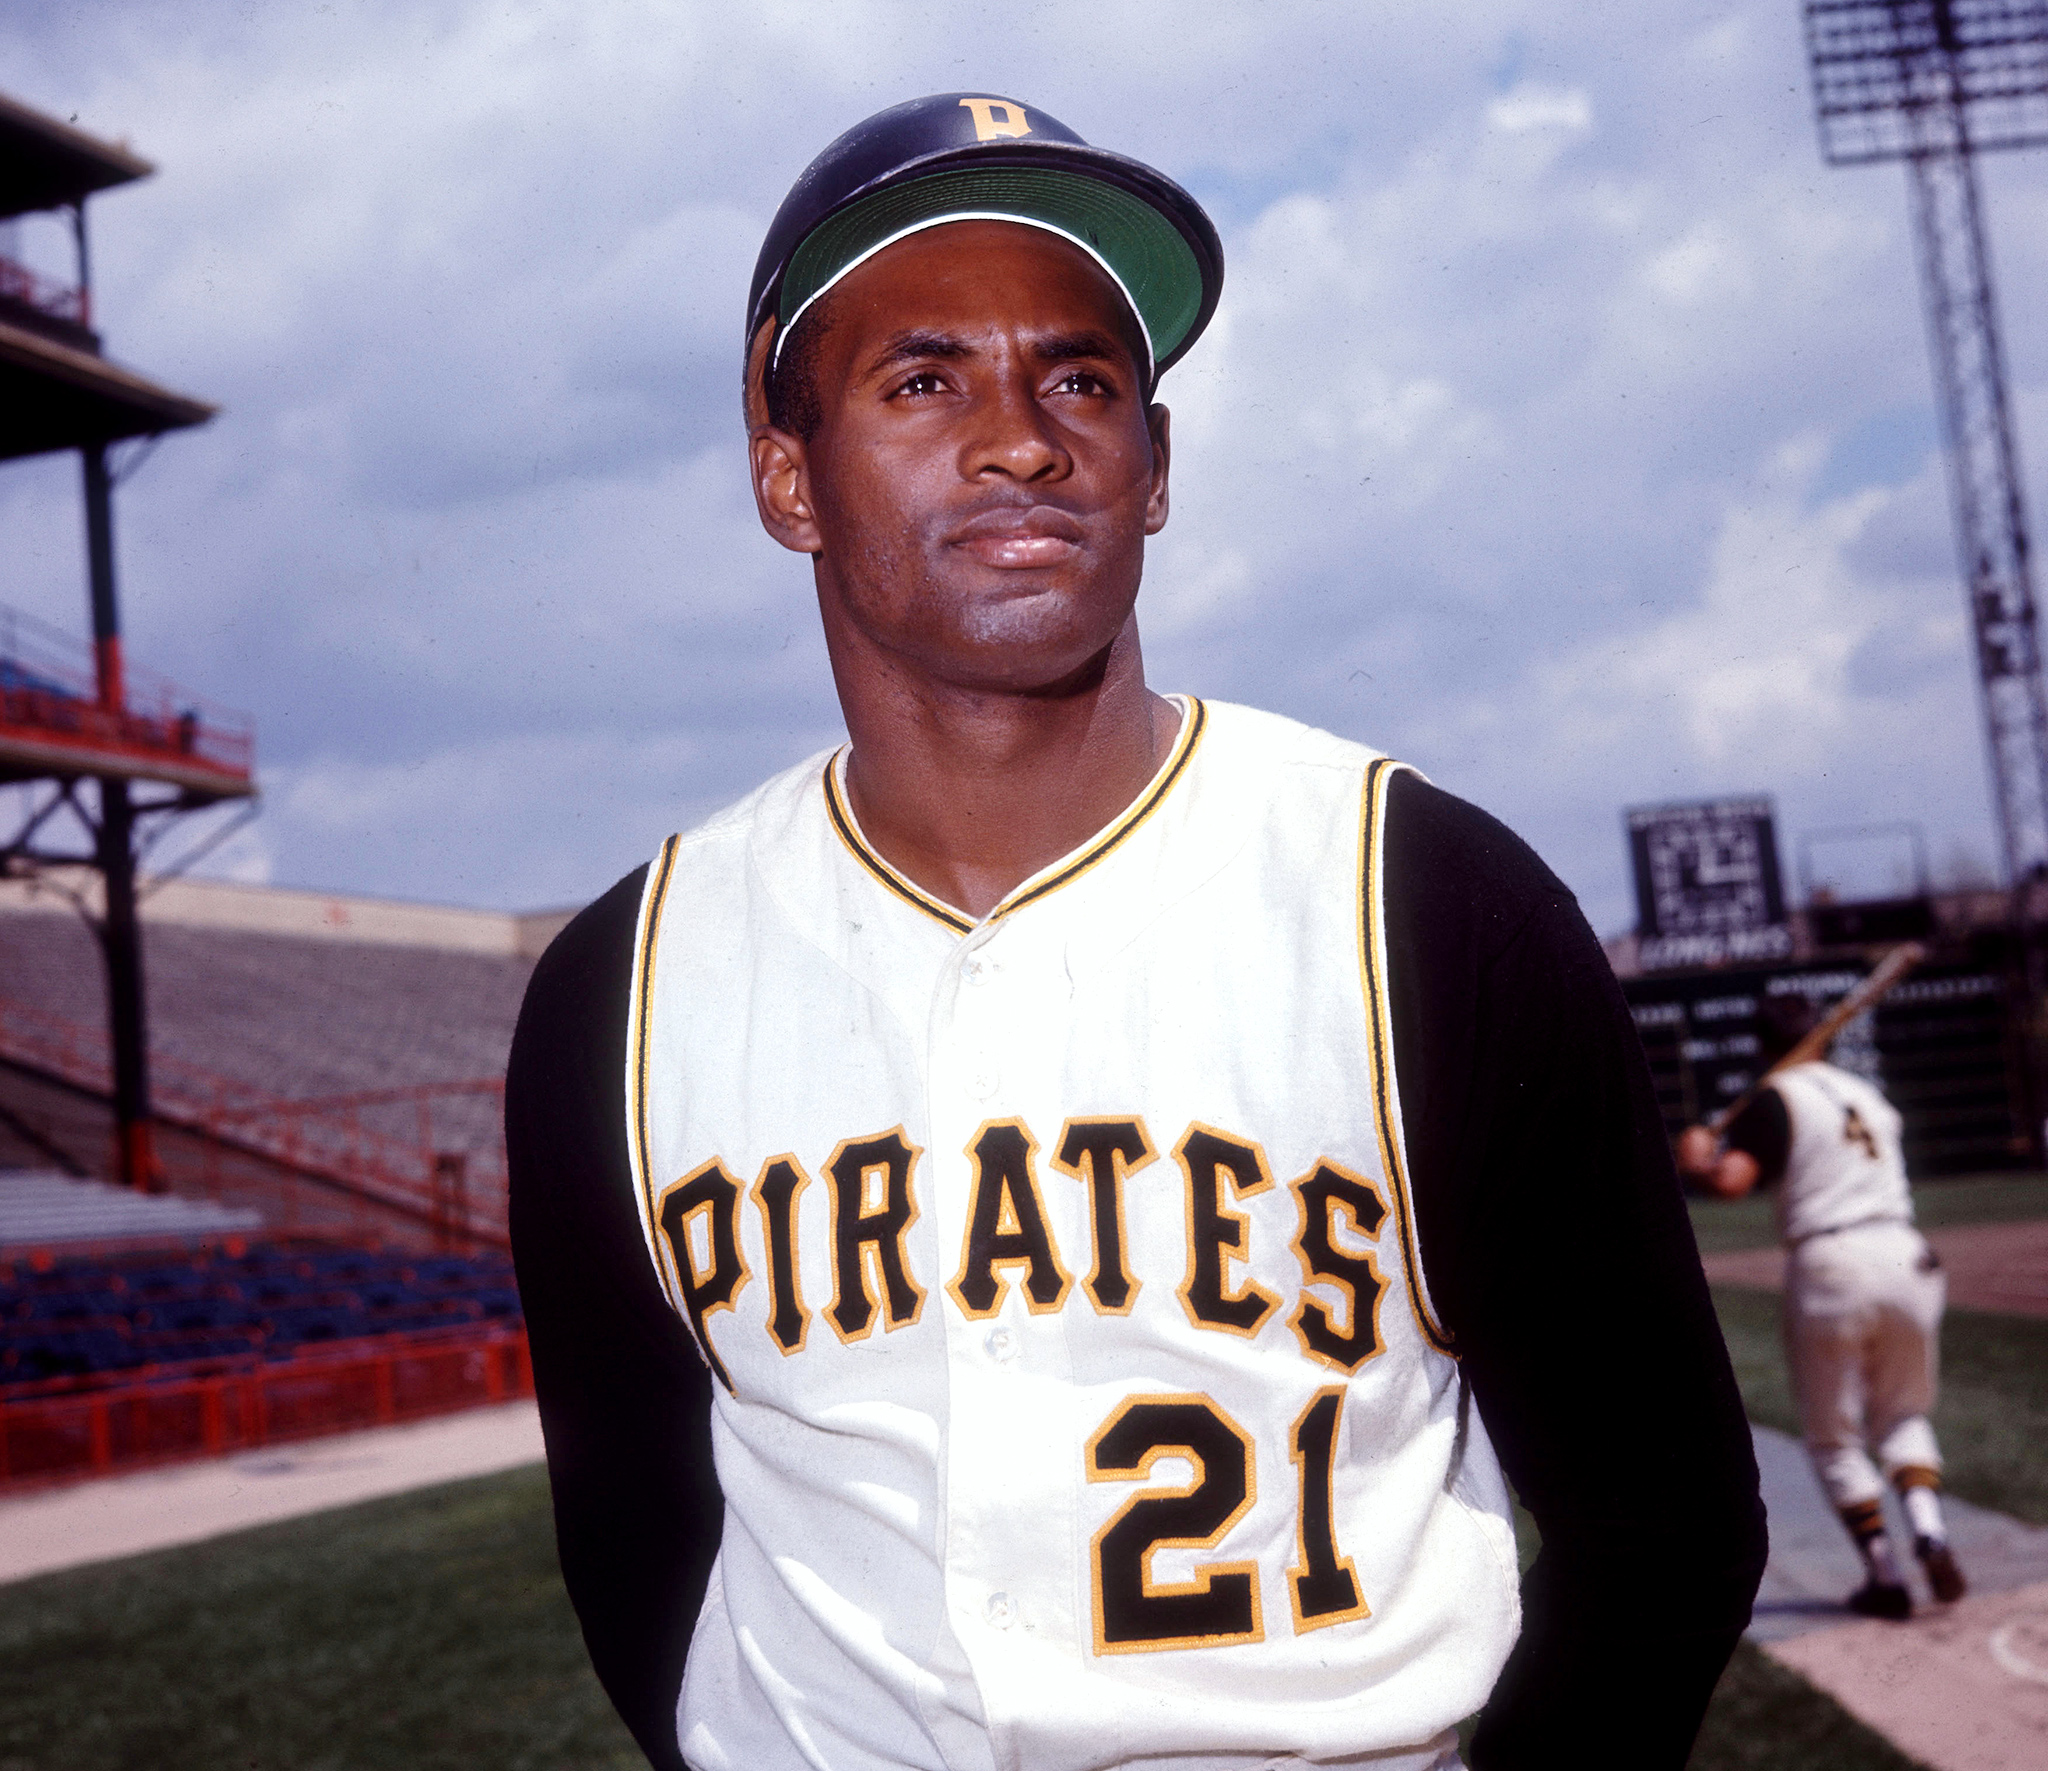 a biography of roberto clemente the baseball player Roberto clemente was both a remarkable ballplayer and genuine folk hero  on  september 30, 1972, clemente stroked a double off of mets pitcher jon matlack  to reach  the puerto rican all-stars in the amateur baseball world series  i' m doing a history project based on roberto clemente, and i just.